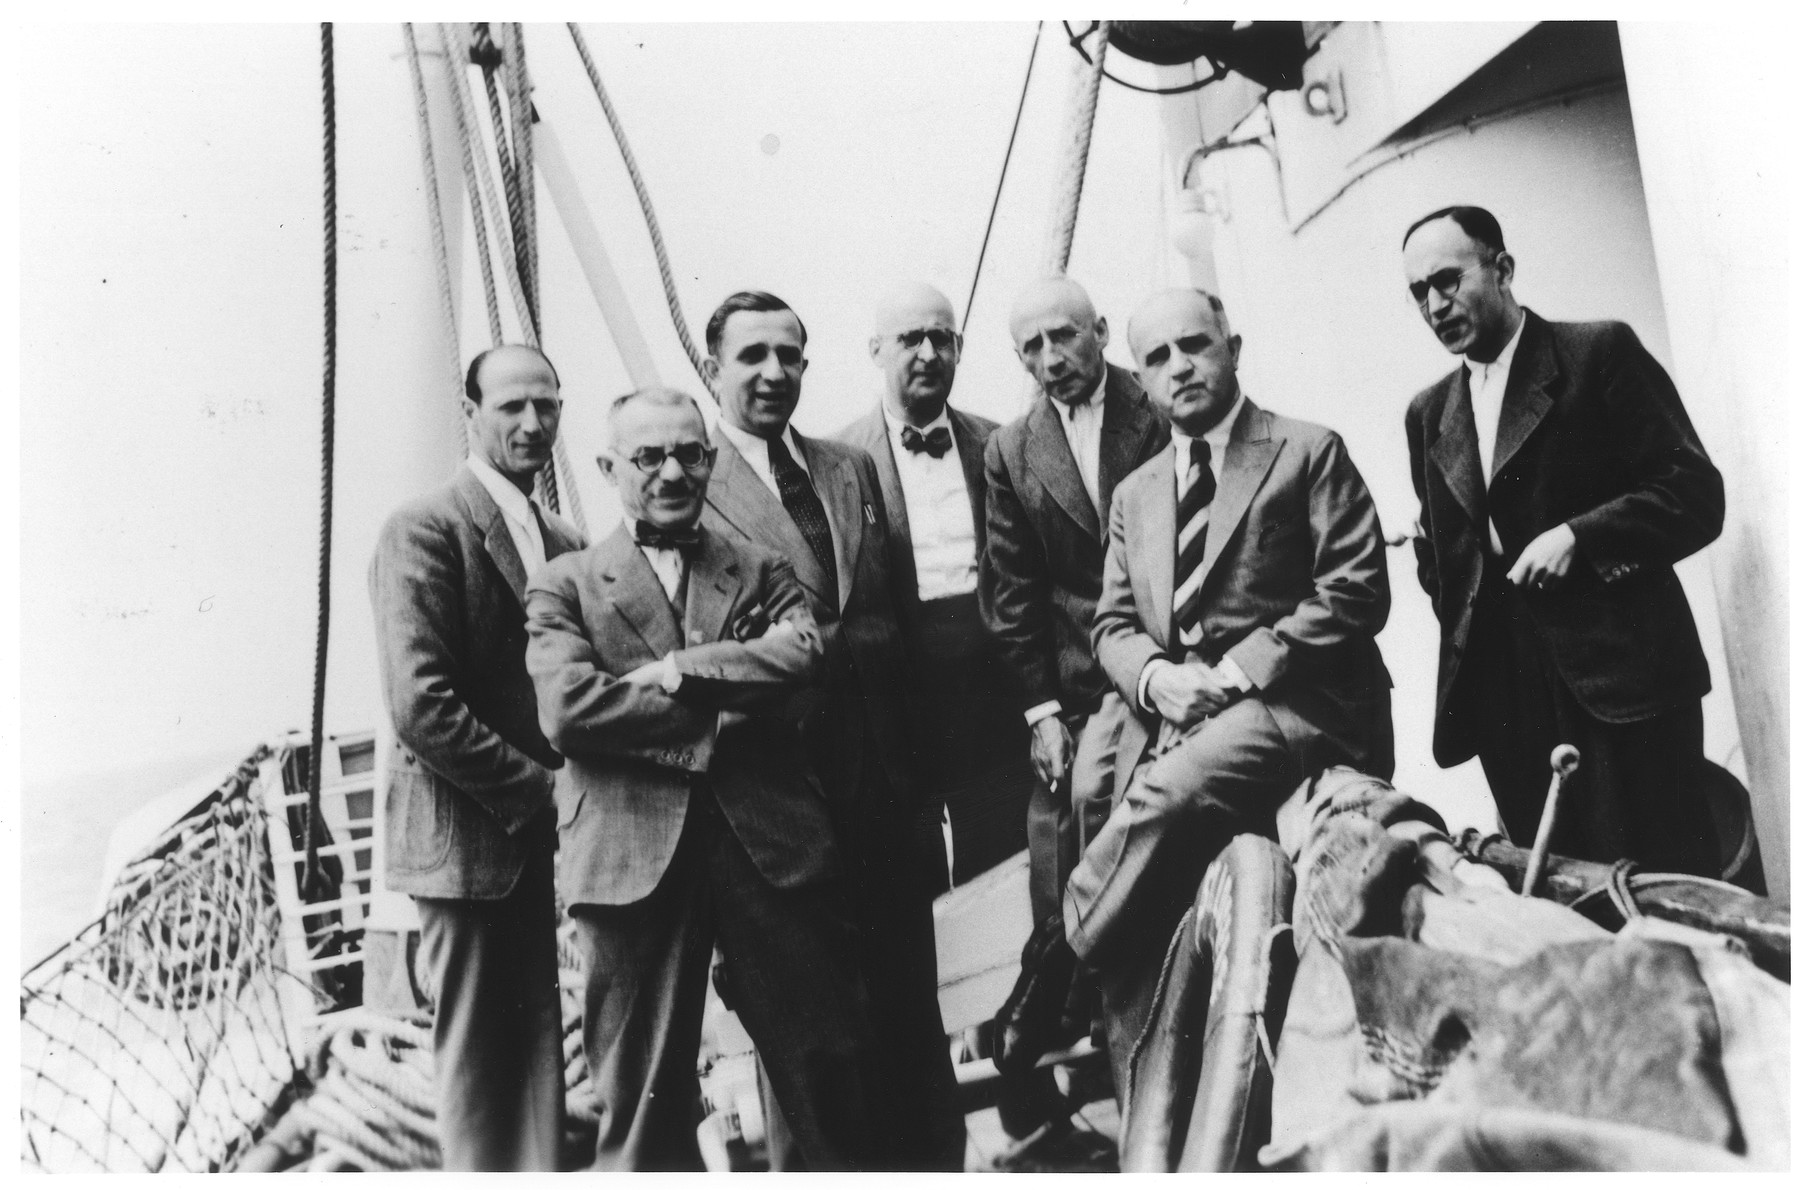 Members of the passenger committee of the MS St. Louis pose on the deck of the ship.  Pictured from left to right are: Guttman, Max Weiss. Herbert Manasse, Max Zellner, Josef Joseph, Arthur Hausdorff and Ernst Vendig.